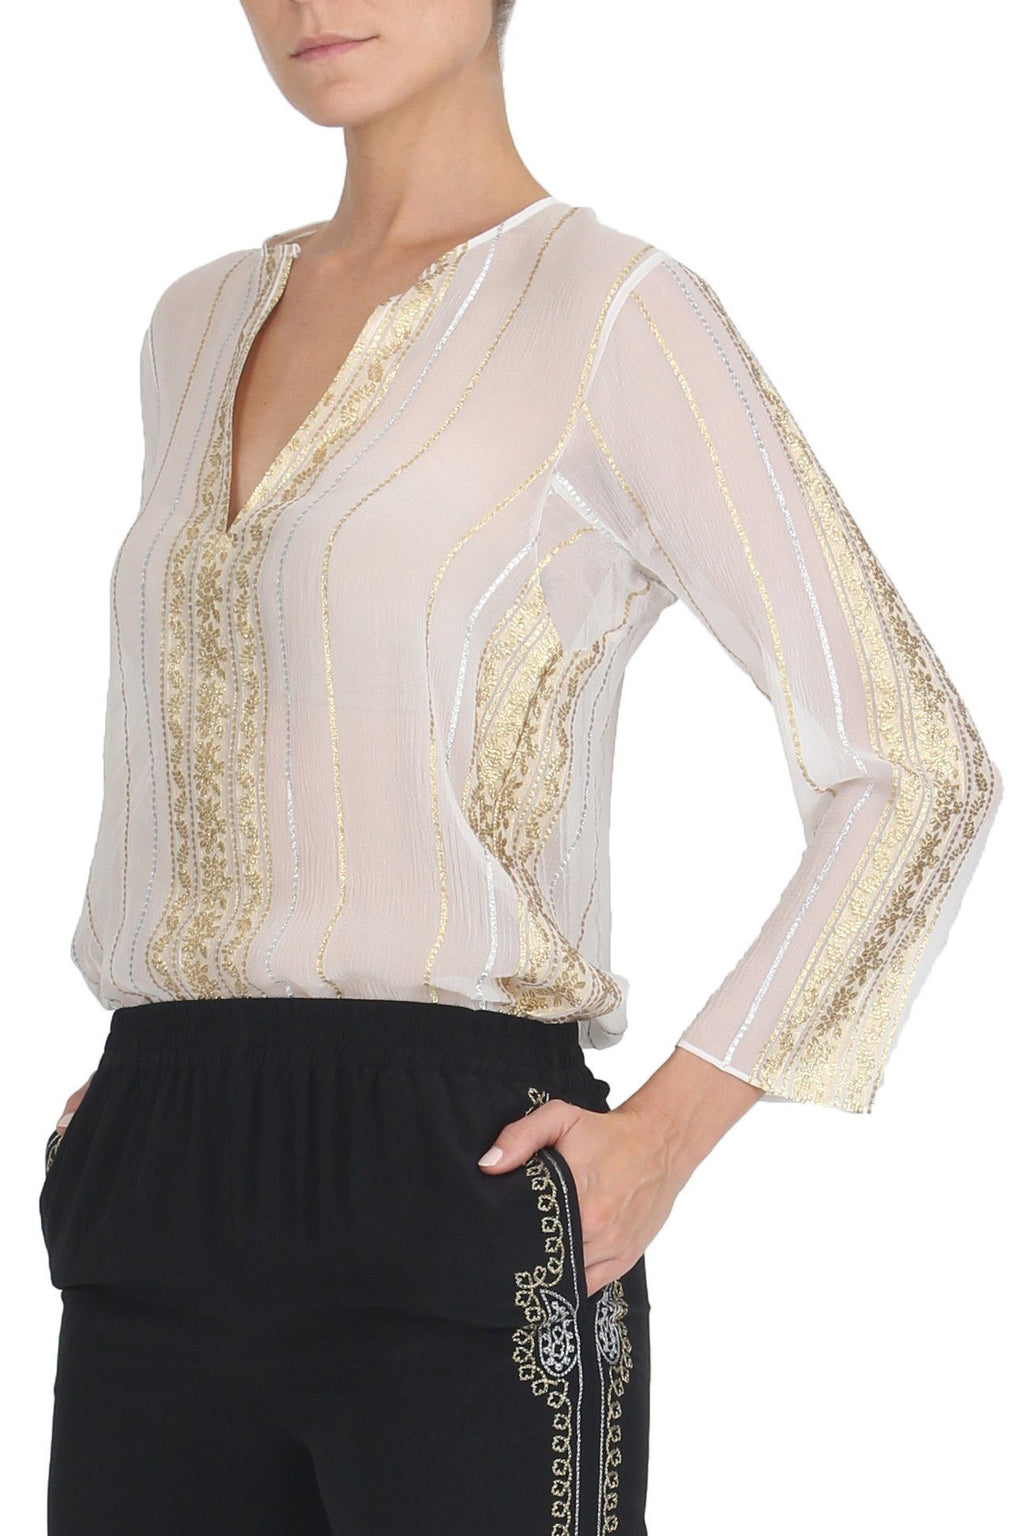 Floral Stripes Embroidery Top Tops Marie France Van Damme 0 White Gold Silver